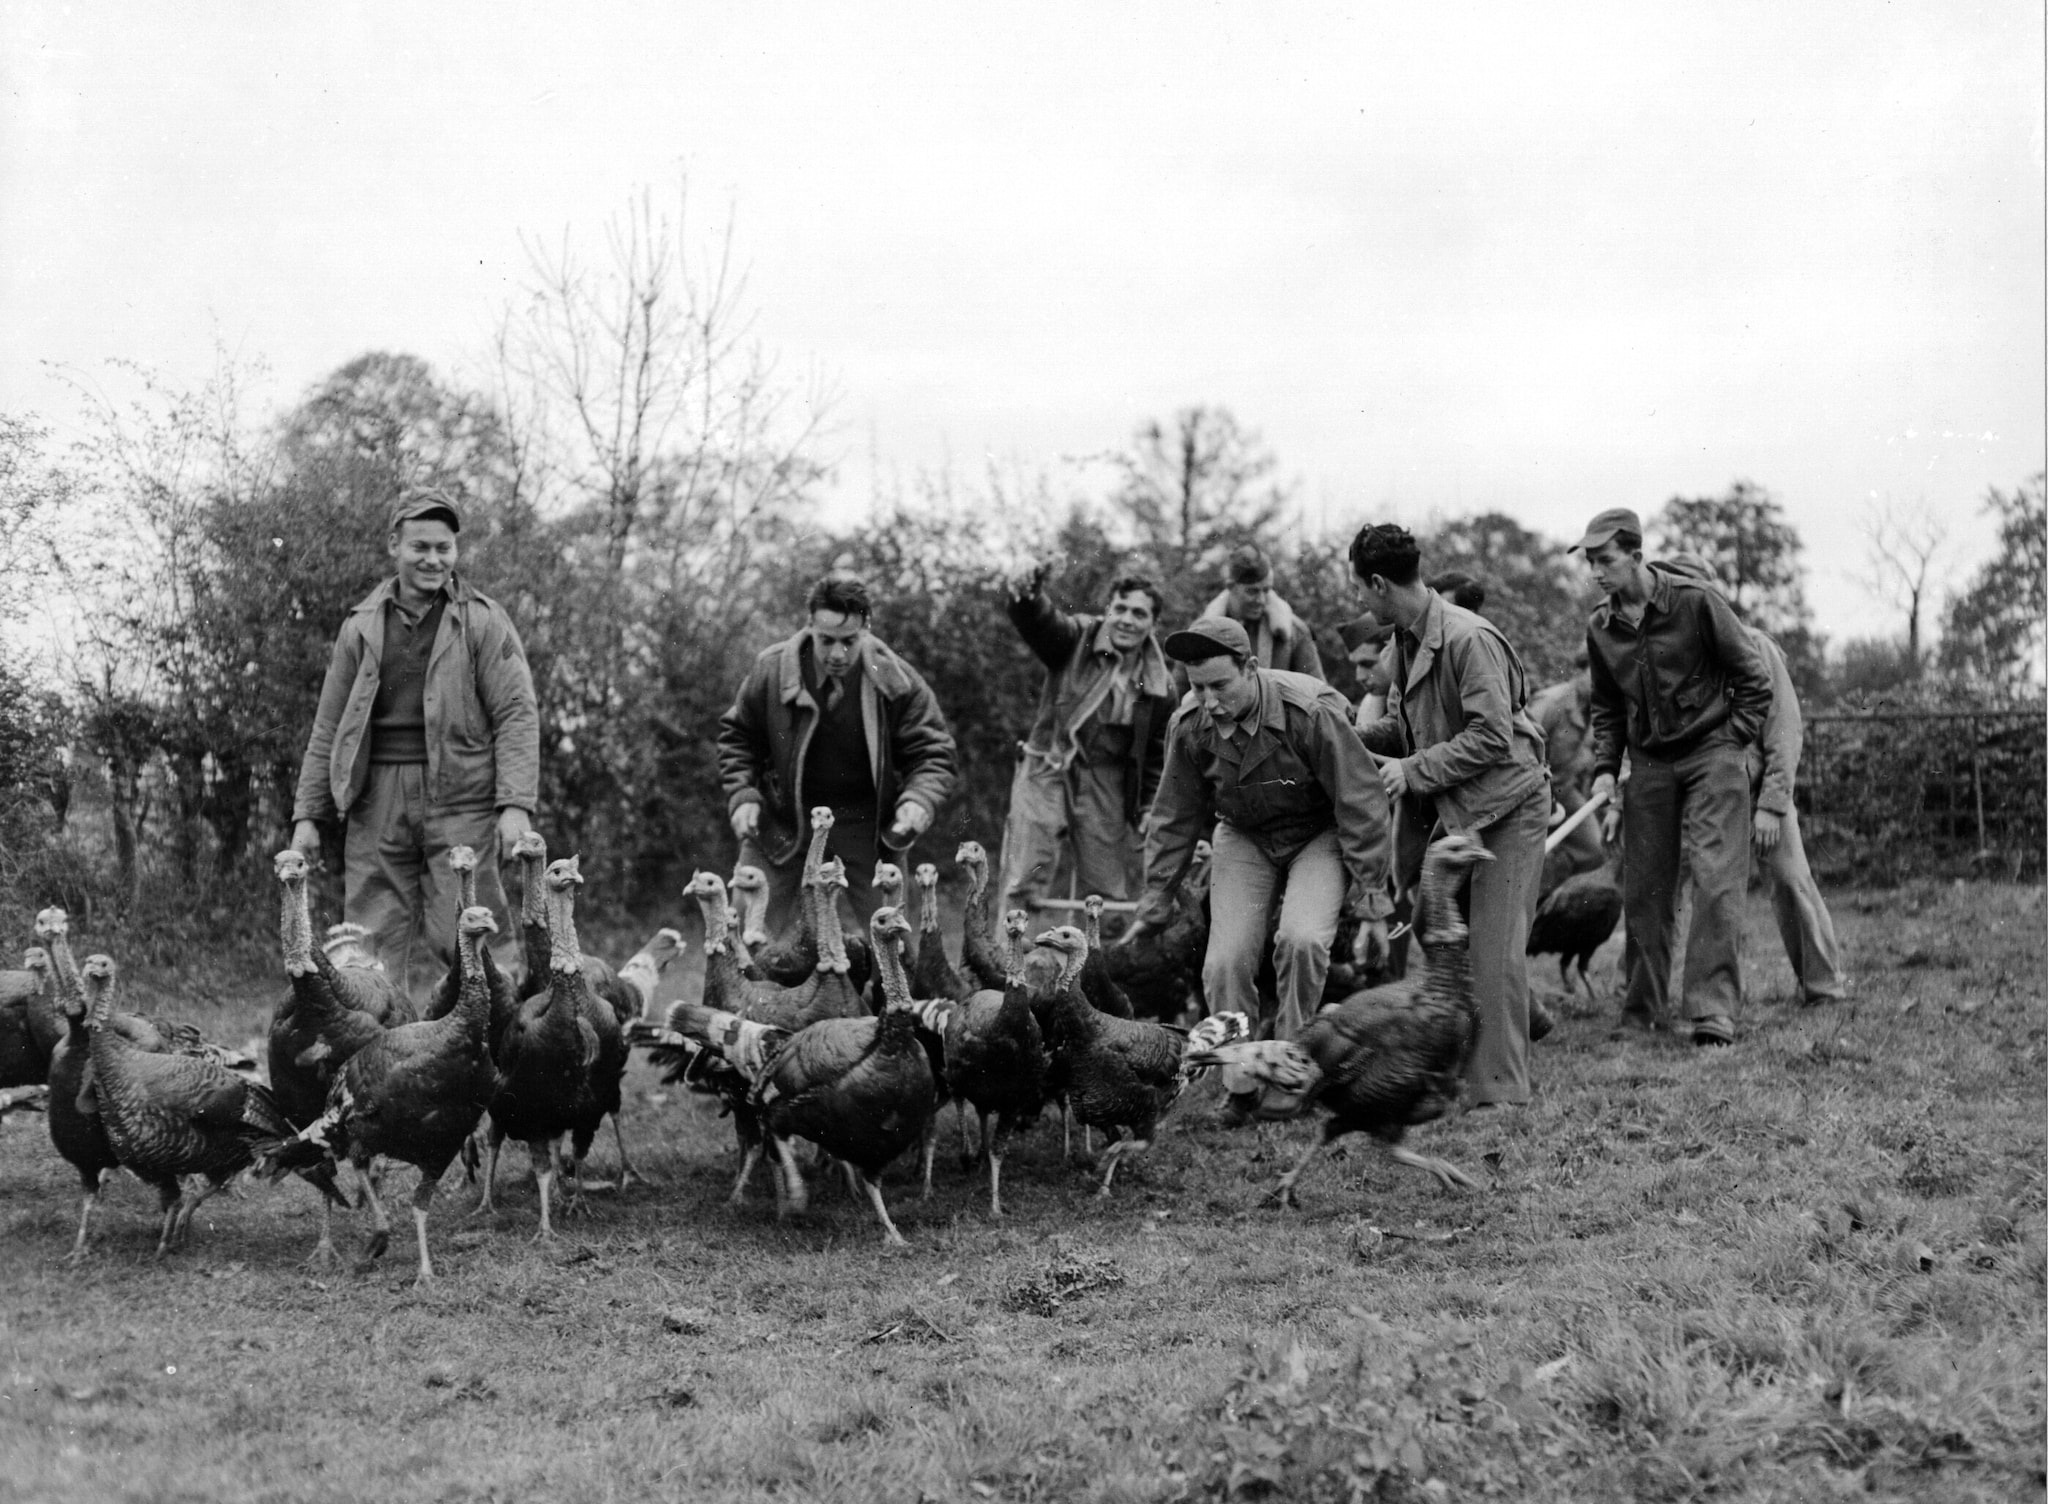 """After receiving permission from the farm owner, these men, attached to an airbase at Norfolk, England, invade a turkey pen to choose their annual turkey day repast. The turkeys were given to the men for their Thanksgiving dinners"""", November 6, 1943 (Photo: National Archives)"""